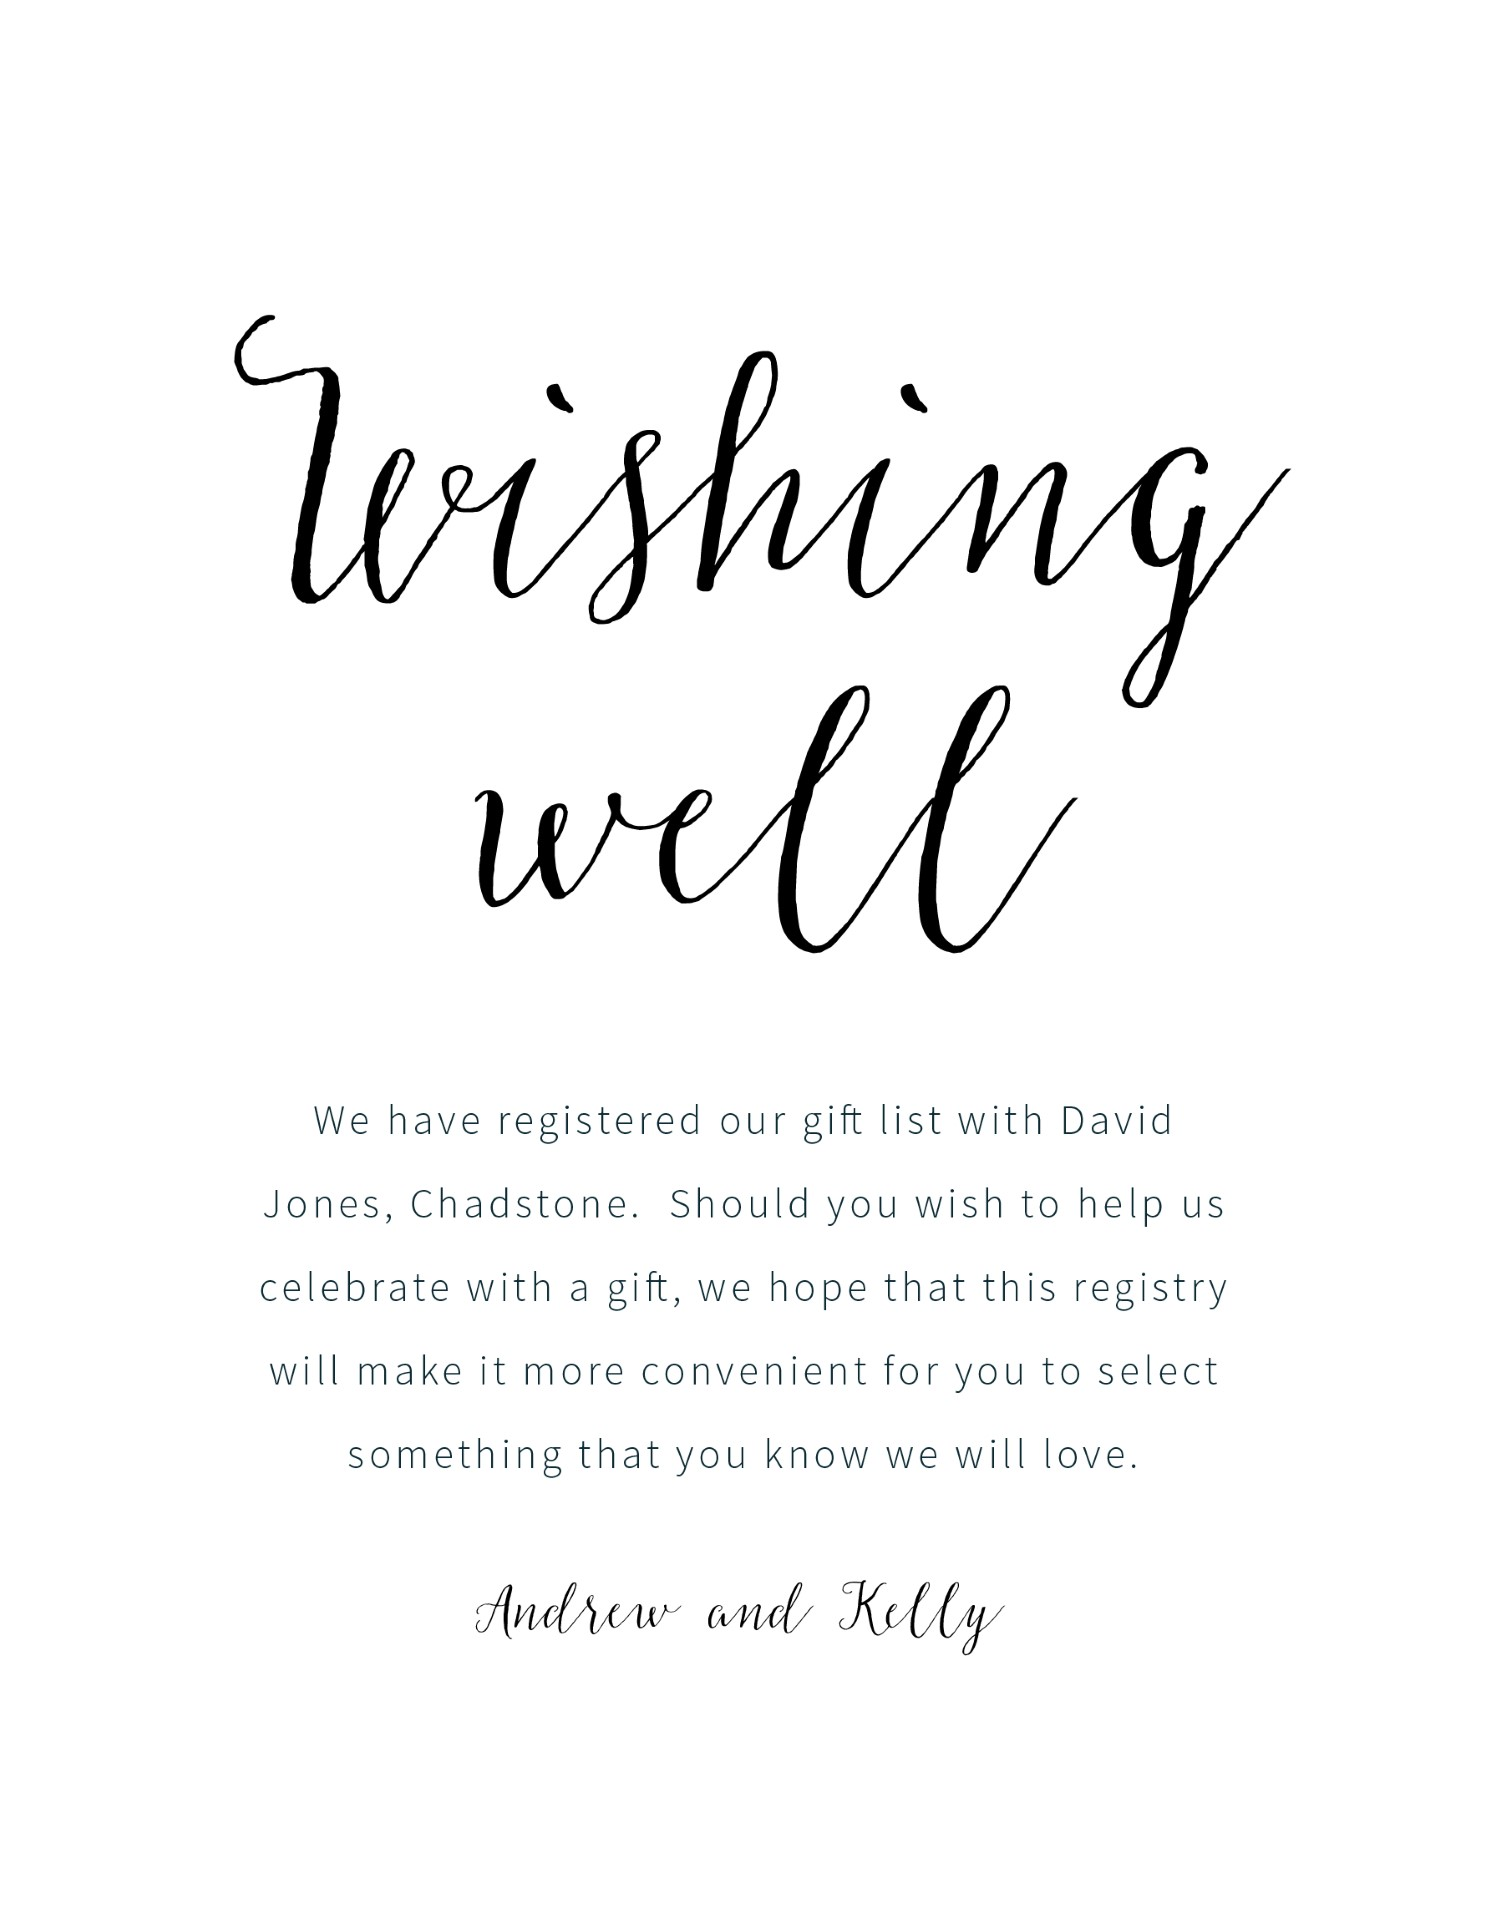 Wedding wishing well amount